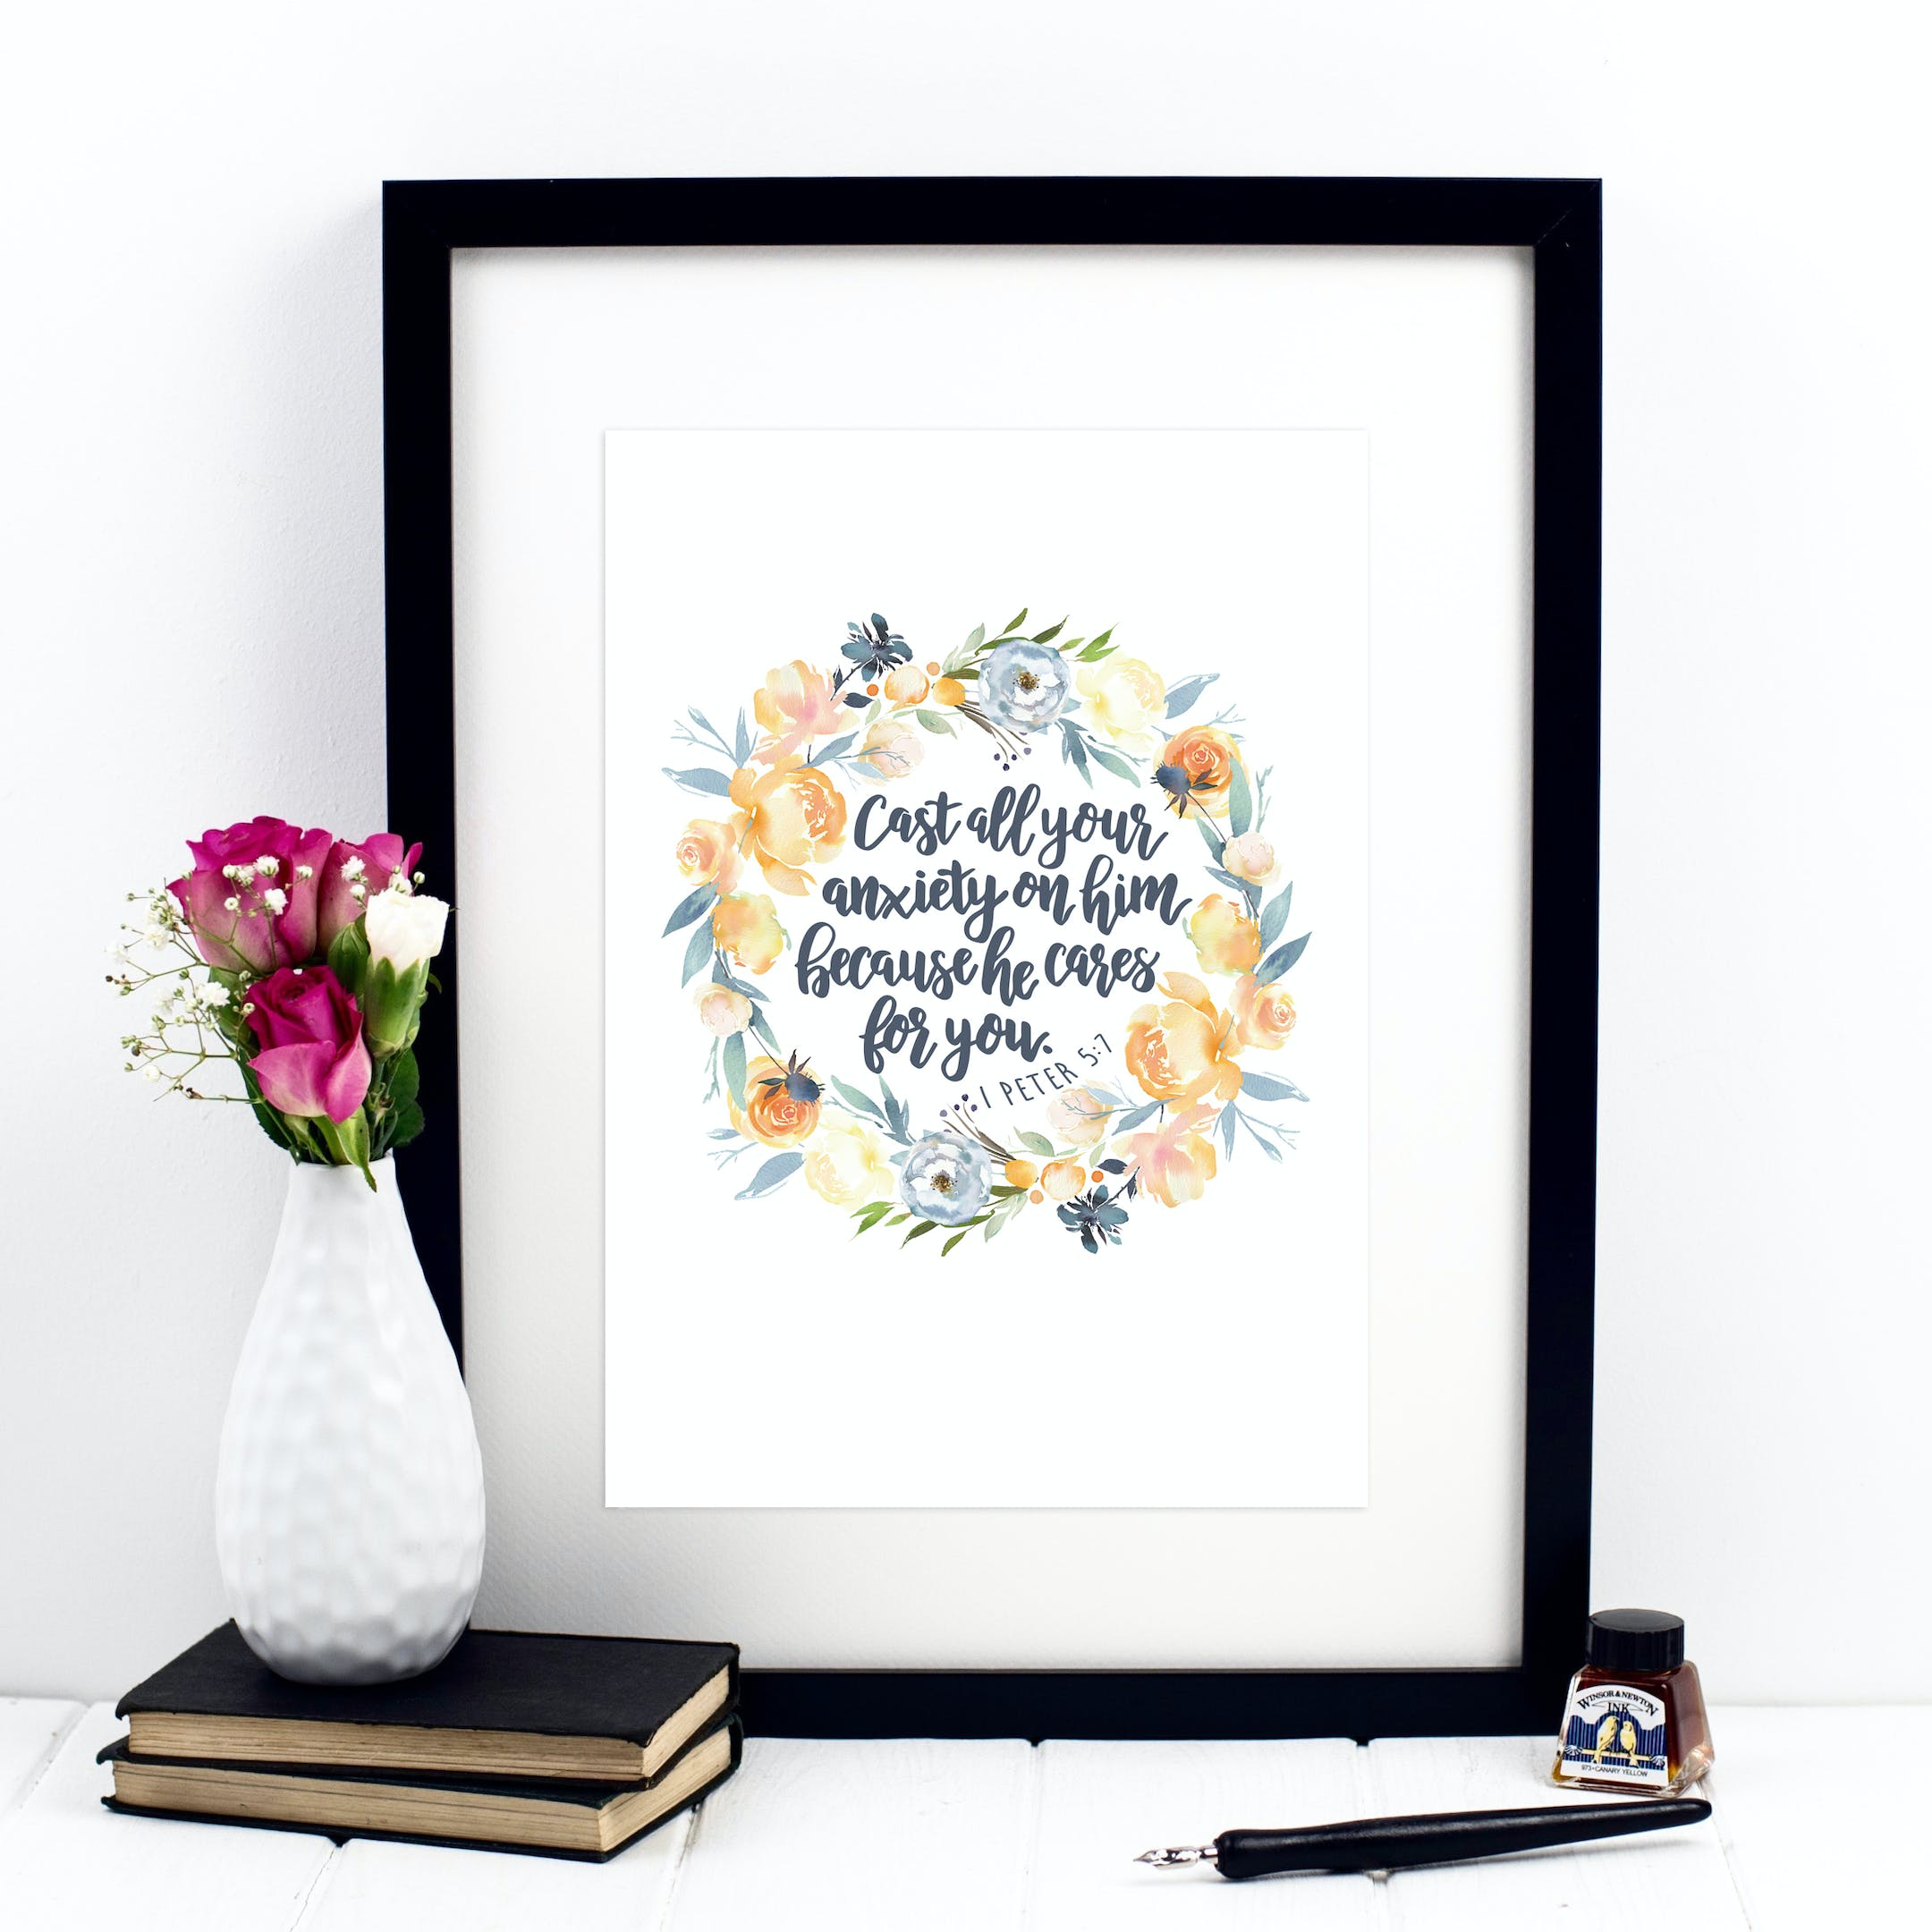 1 Peter 5:7 Wreath Print - Cast All Your Anxiety - Izzy and Pop